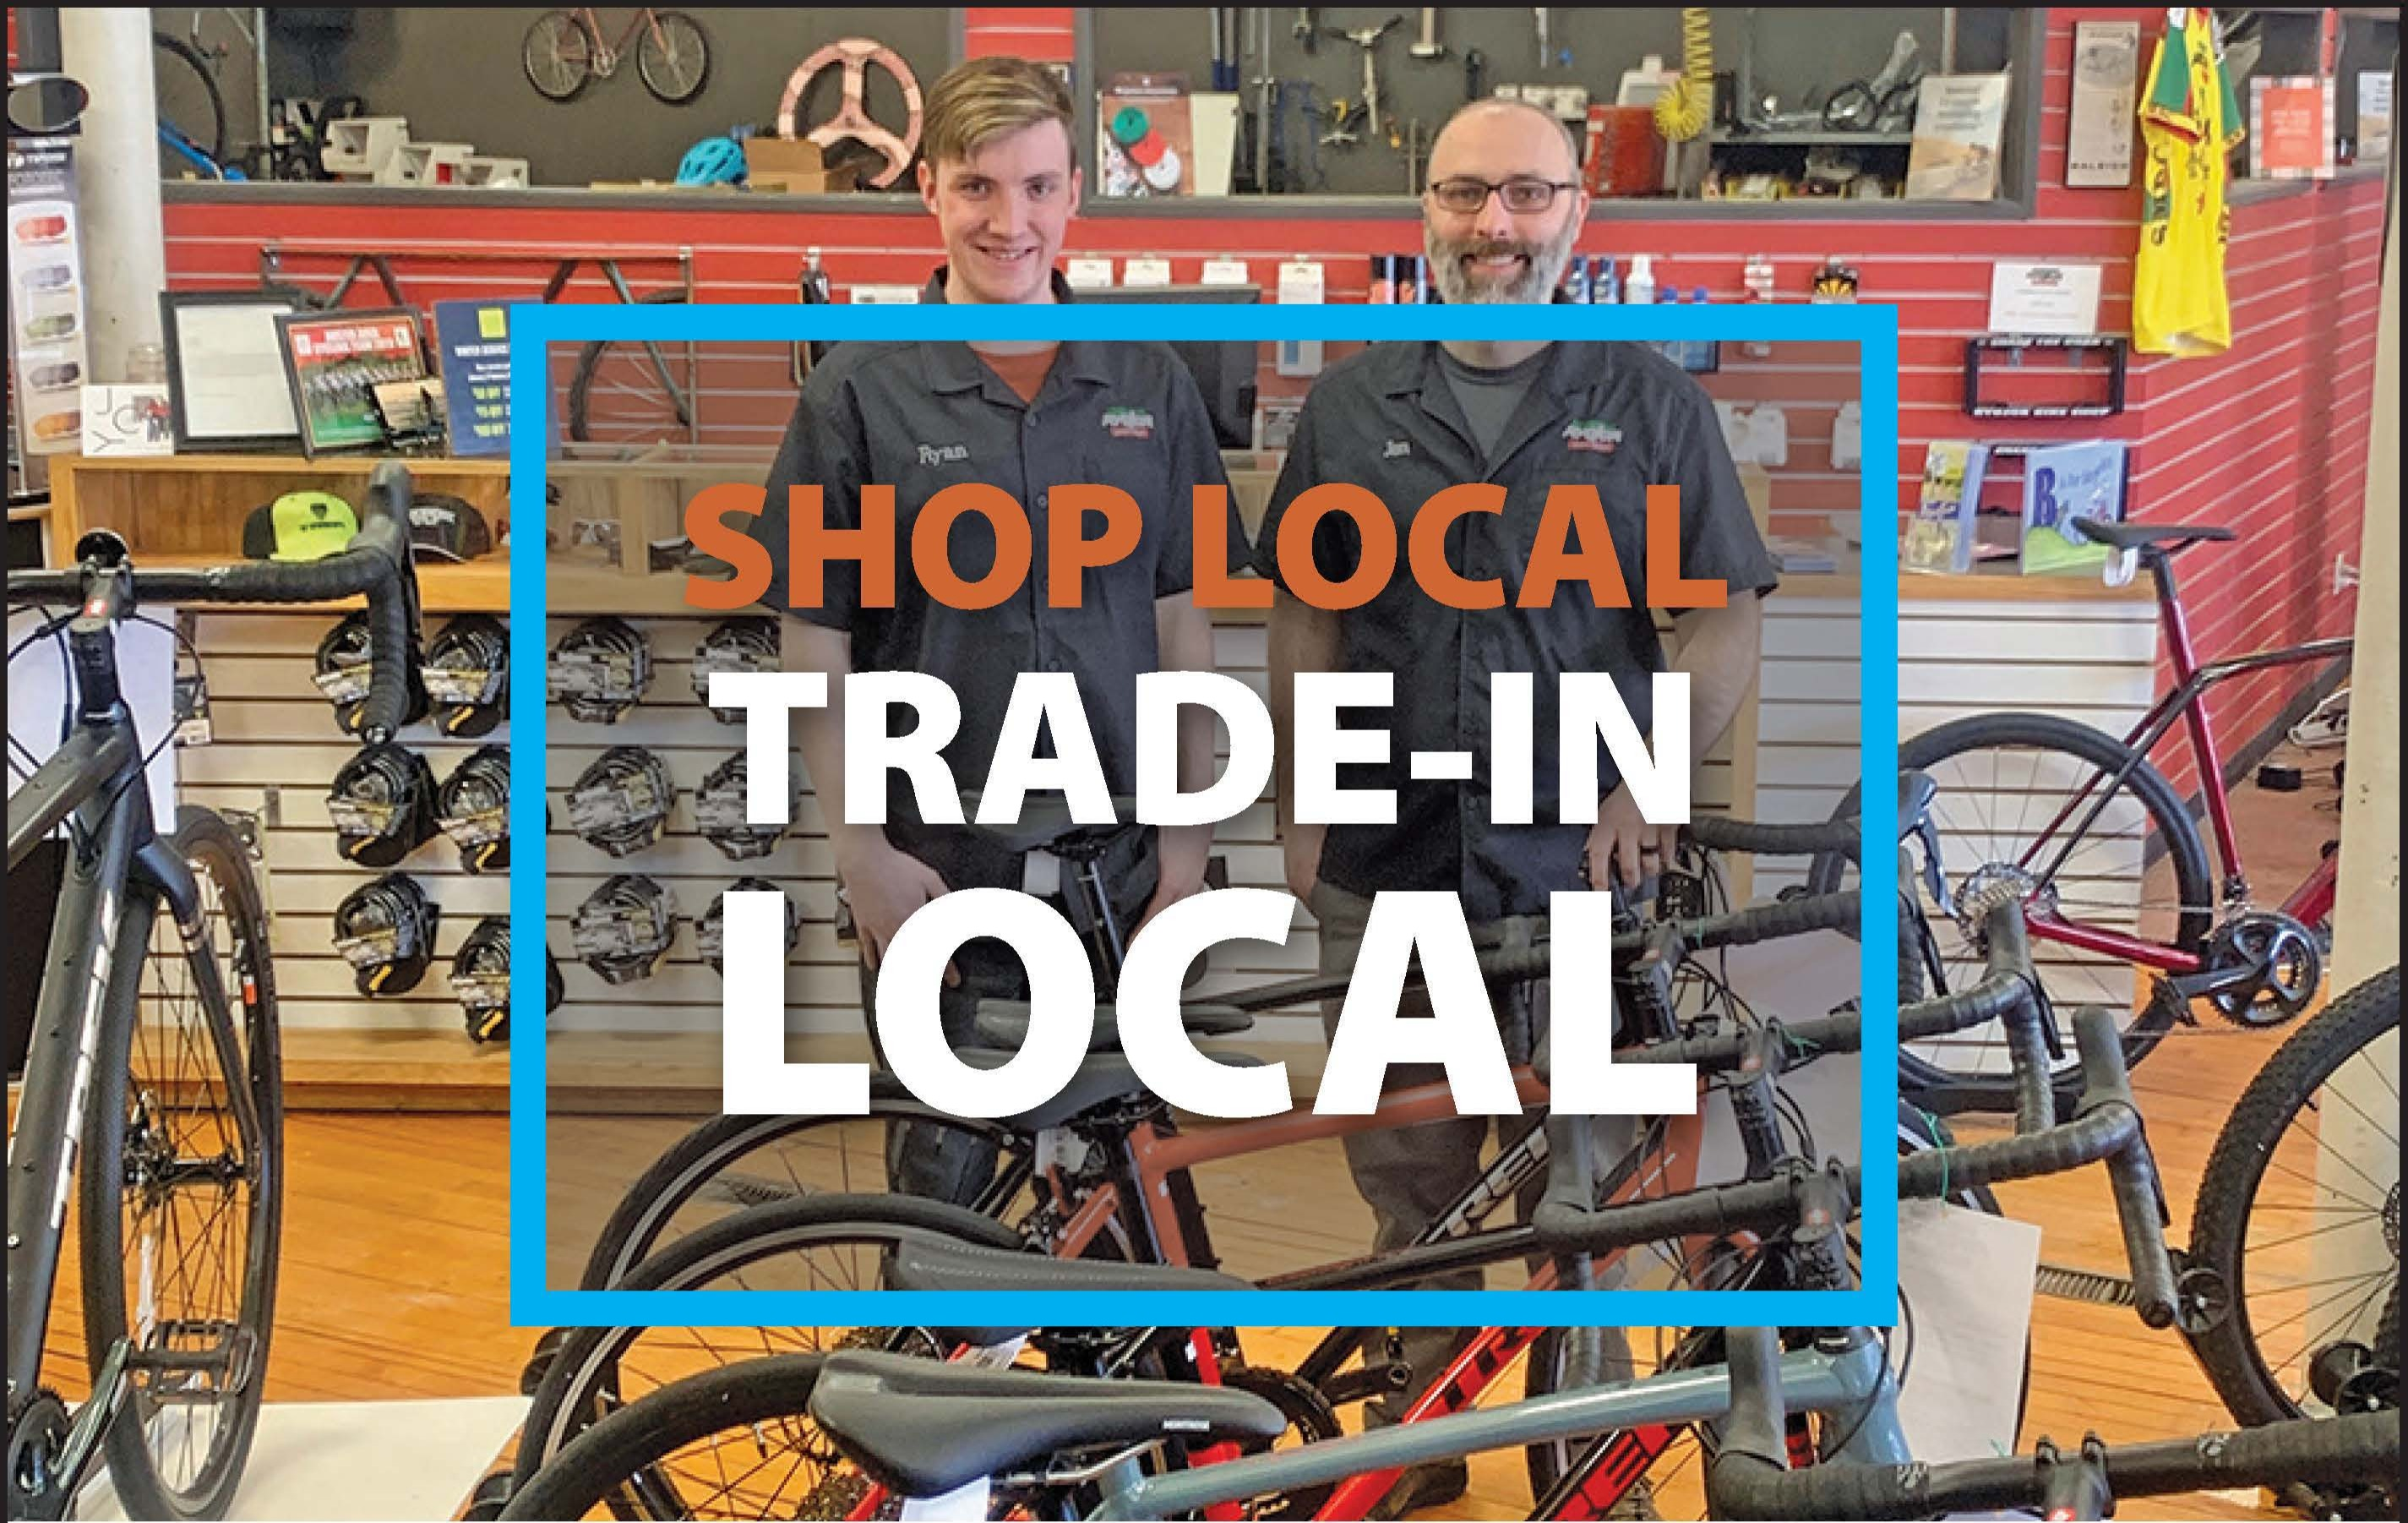 Shop Local, Trade In Local